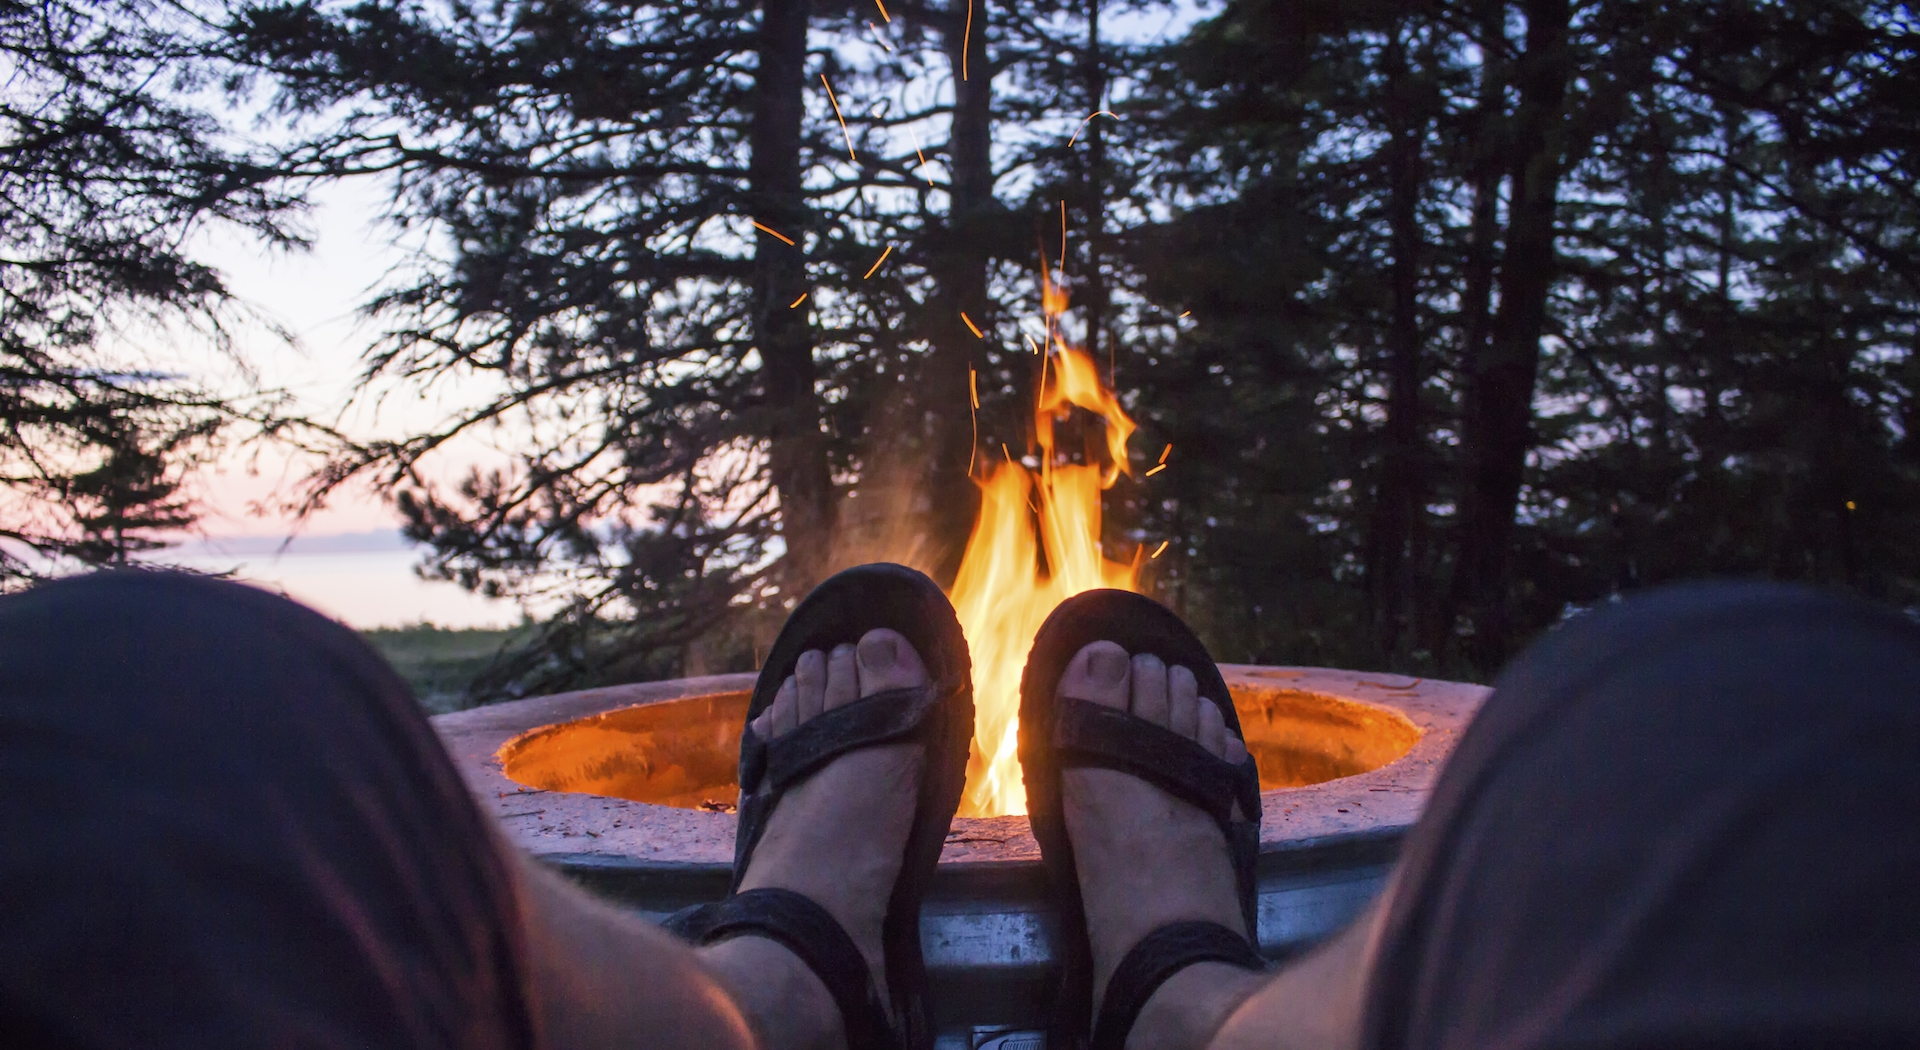 10. 10 Best Northern Michigan Campgrounds